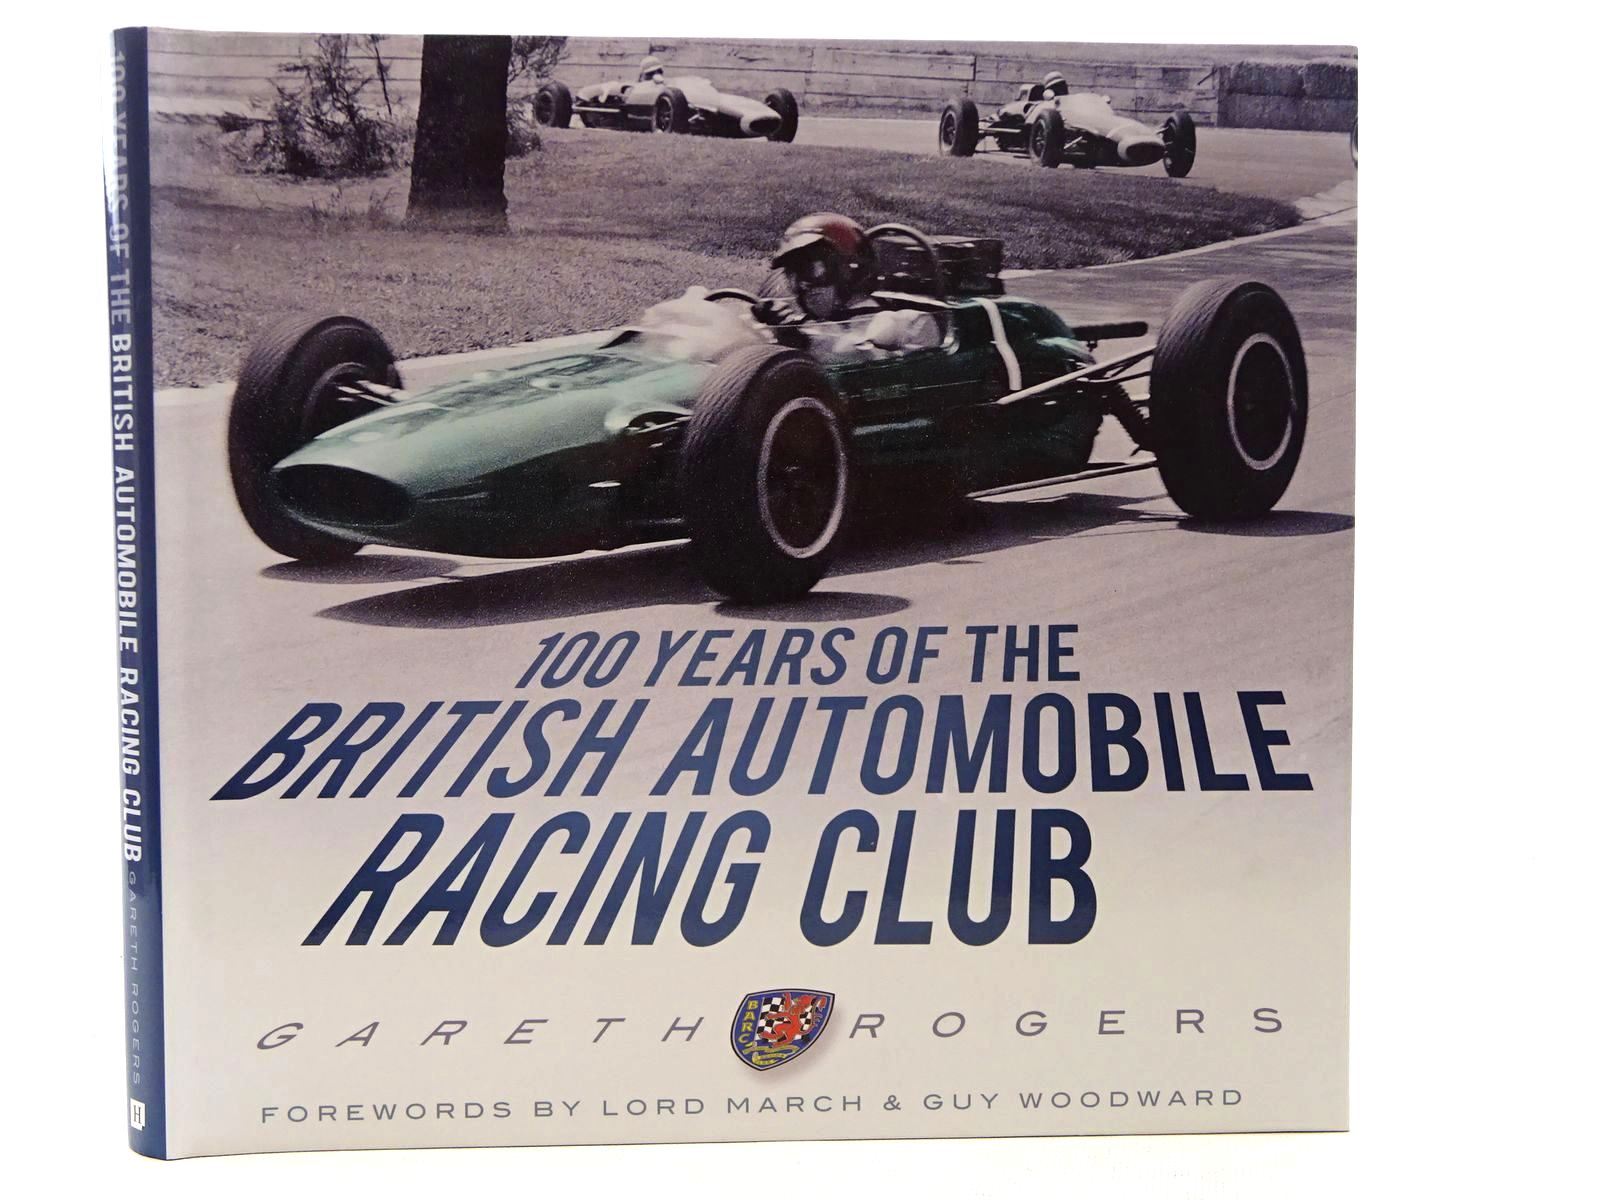 Photo of 100 YEARS OF THE BRITISH AUTOMOBILE RACING CLUB written by Rogers, Gareth published by The History Press (STOCK CODE: 1610389)  for sale by Stella & Rose's Books